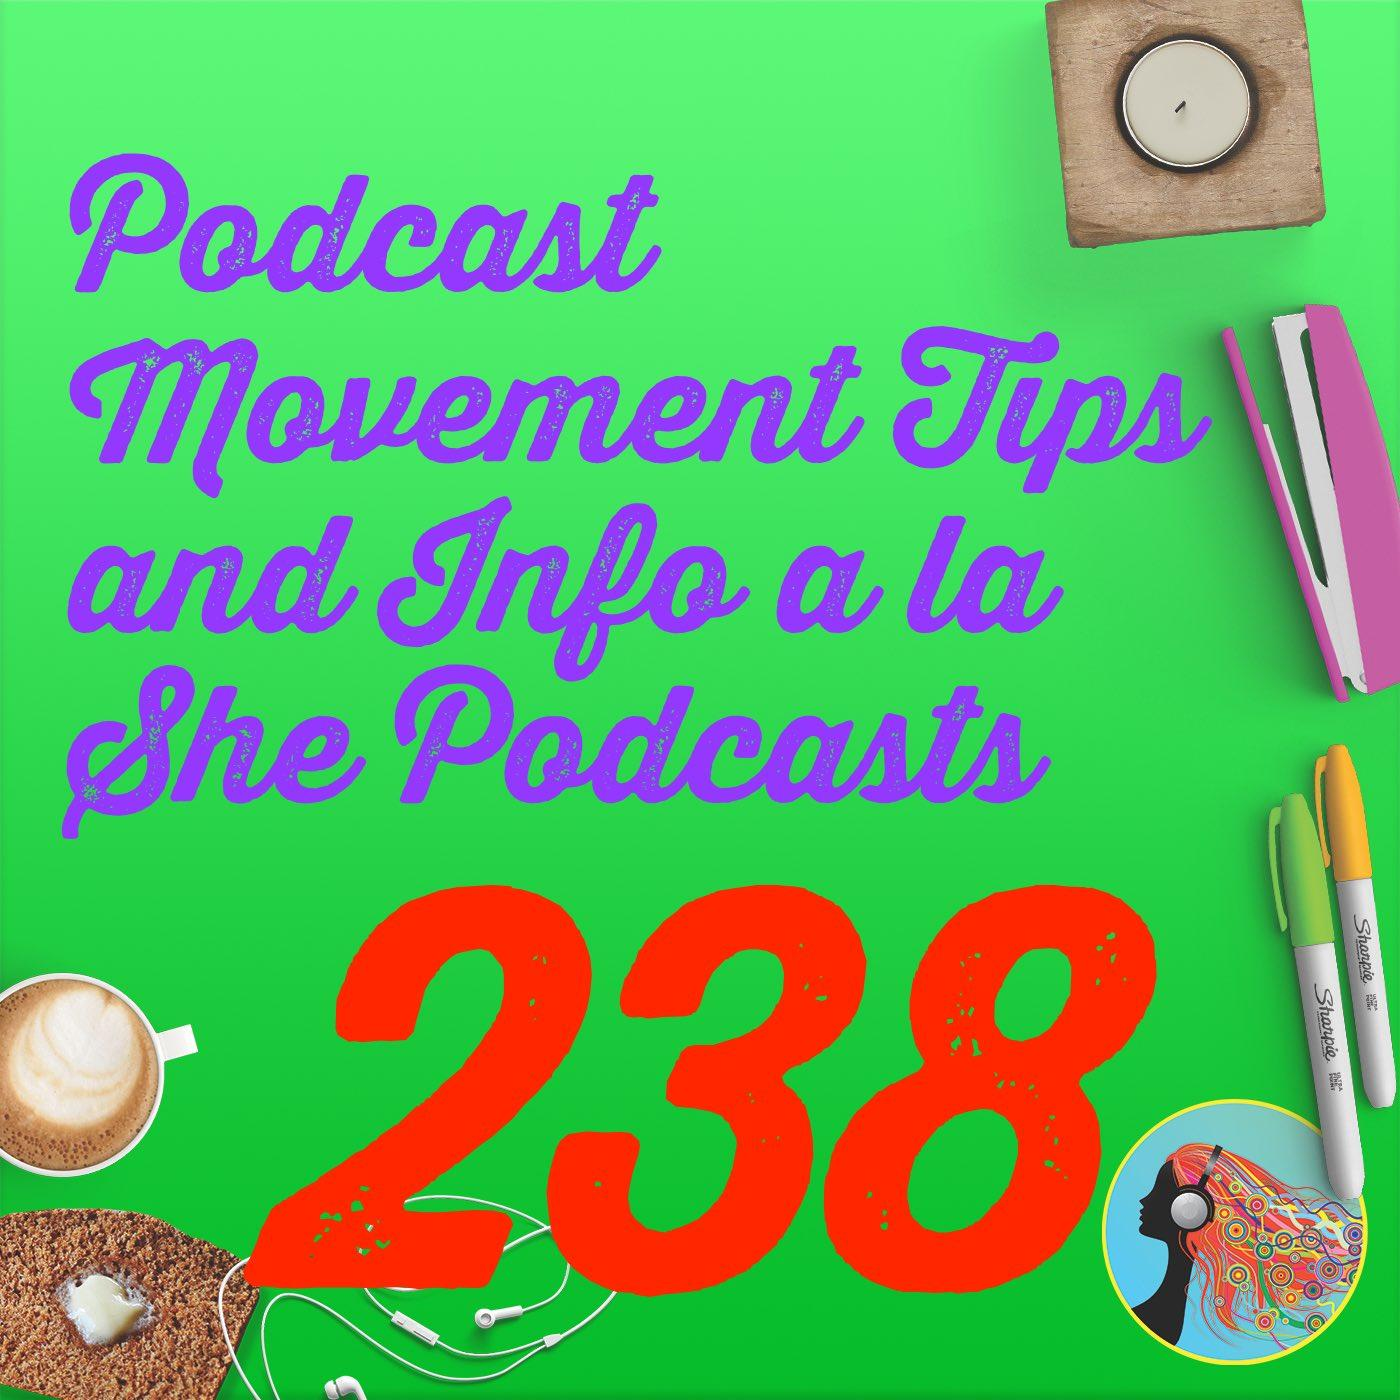 238 Podcast Movement Tips and Info a la She Podcasts